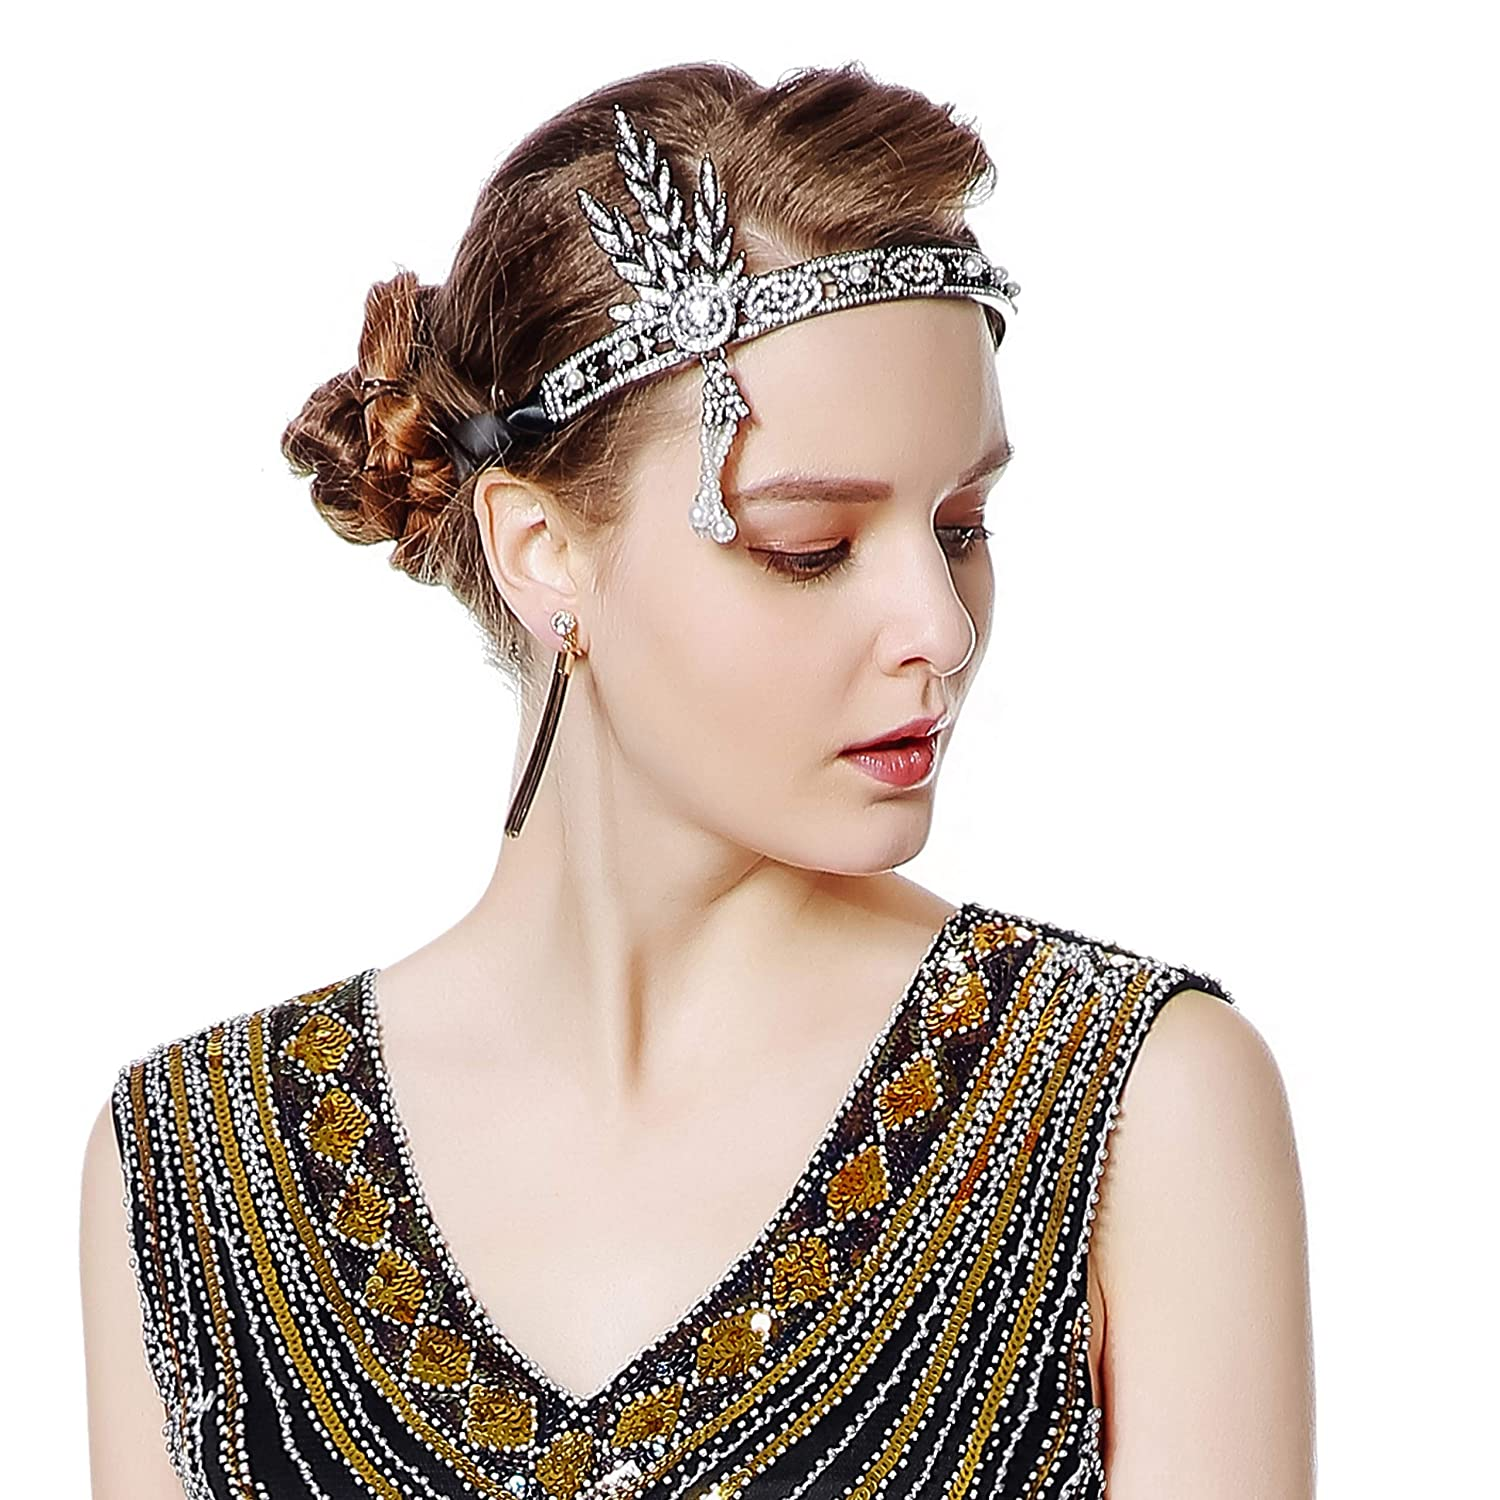 Metme 1920s Great Gatsby Accessories Set Costume Flapper Necklace Headband Bracelets for Women with Gift Box